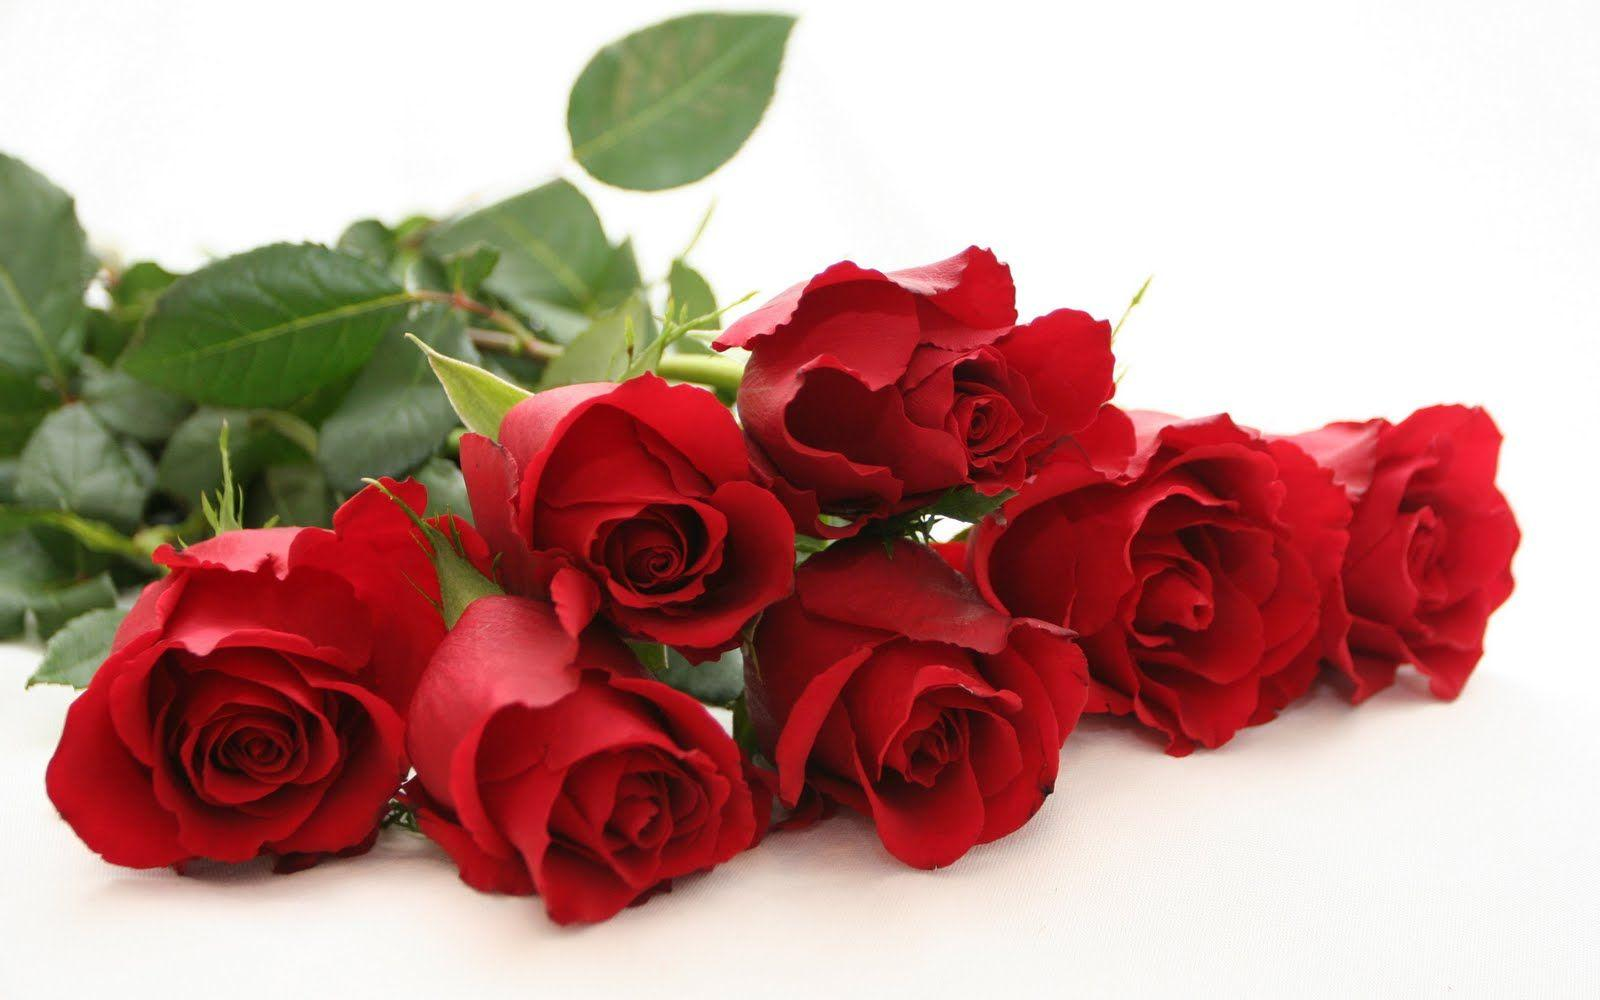 Wallpaper download pagalworld - Free Rose Wallpapers Download Wallpapers Daddy